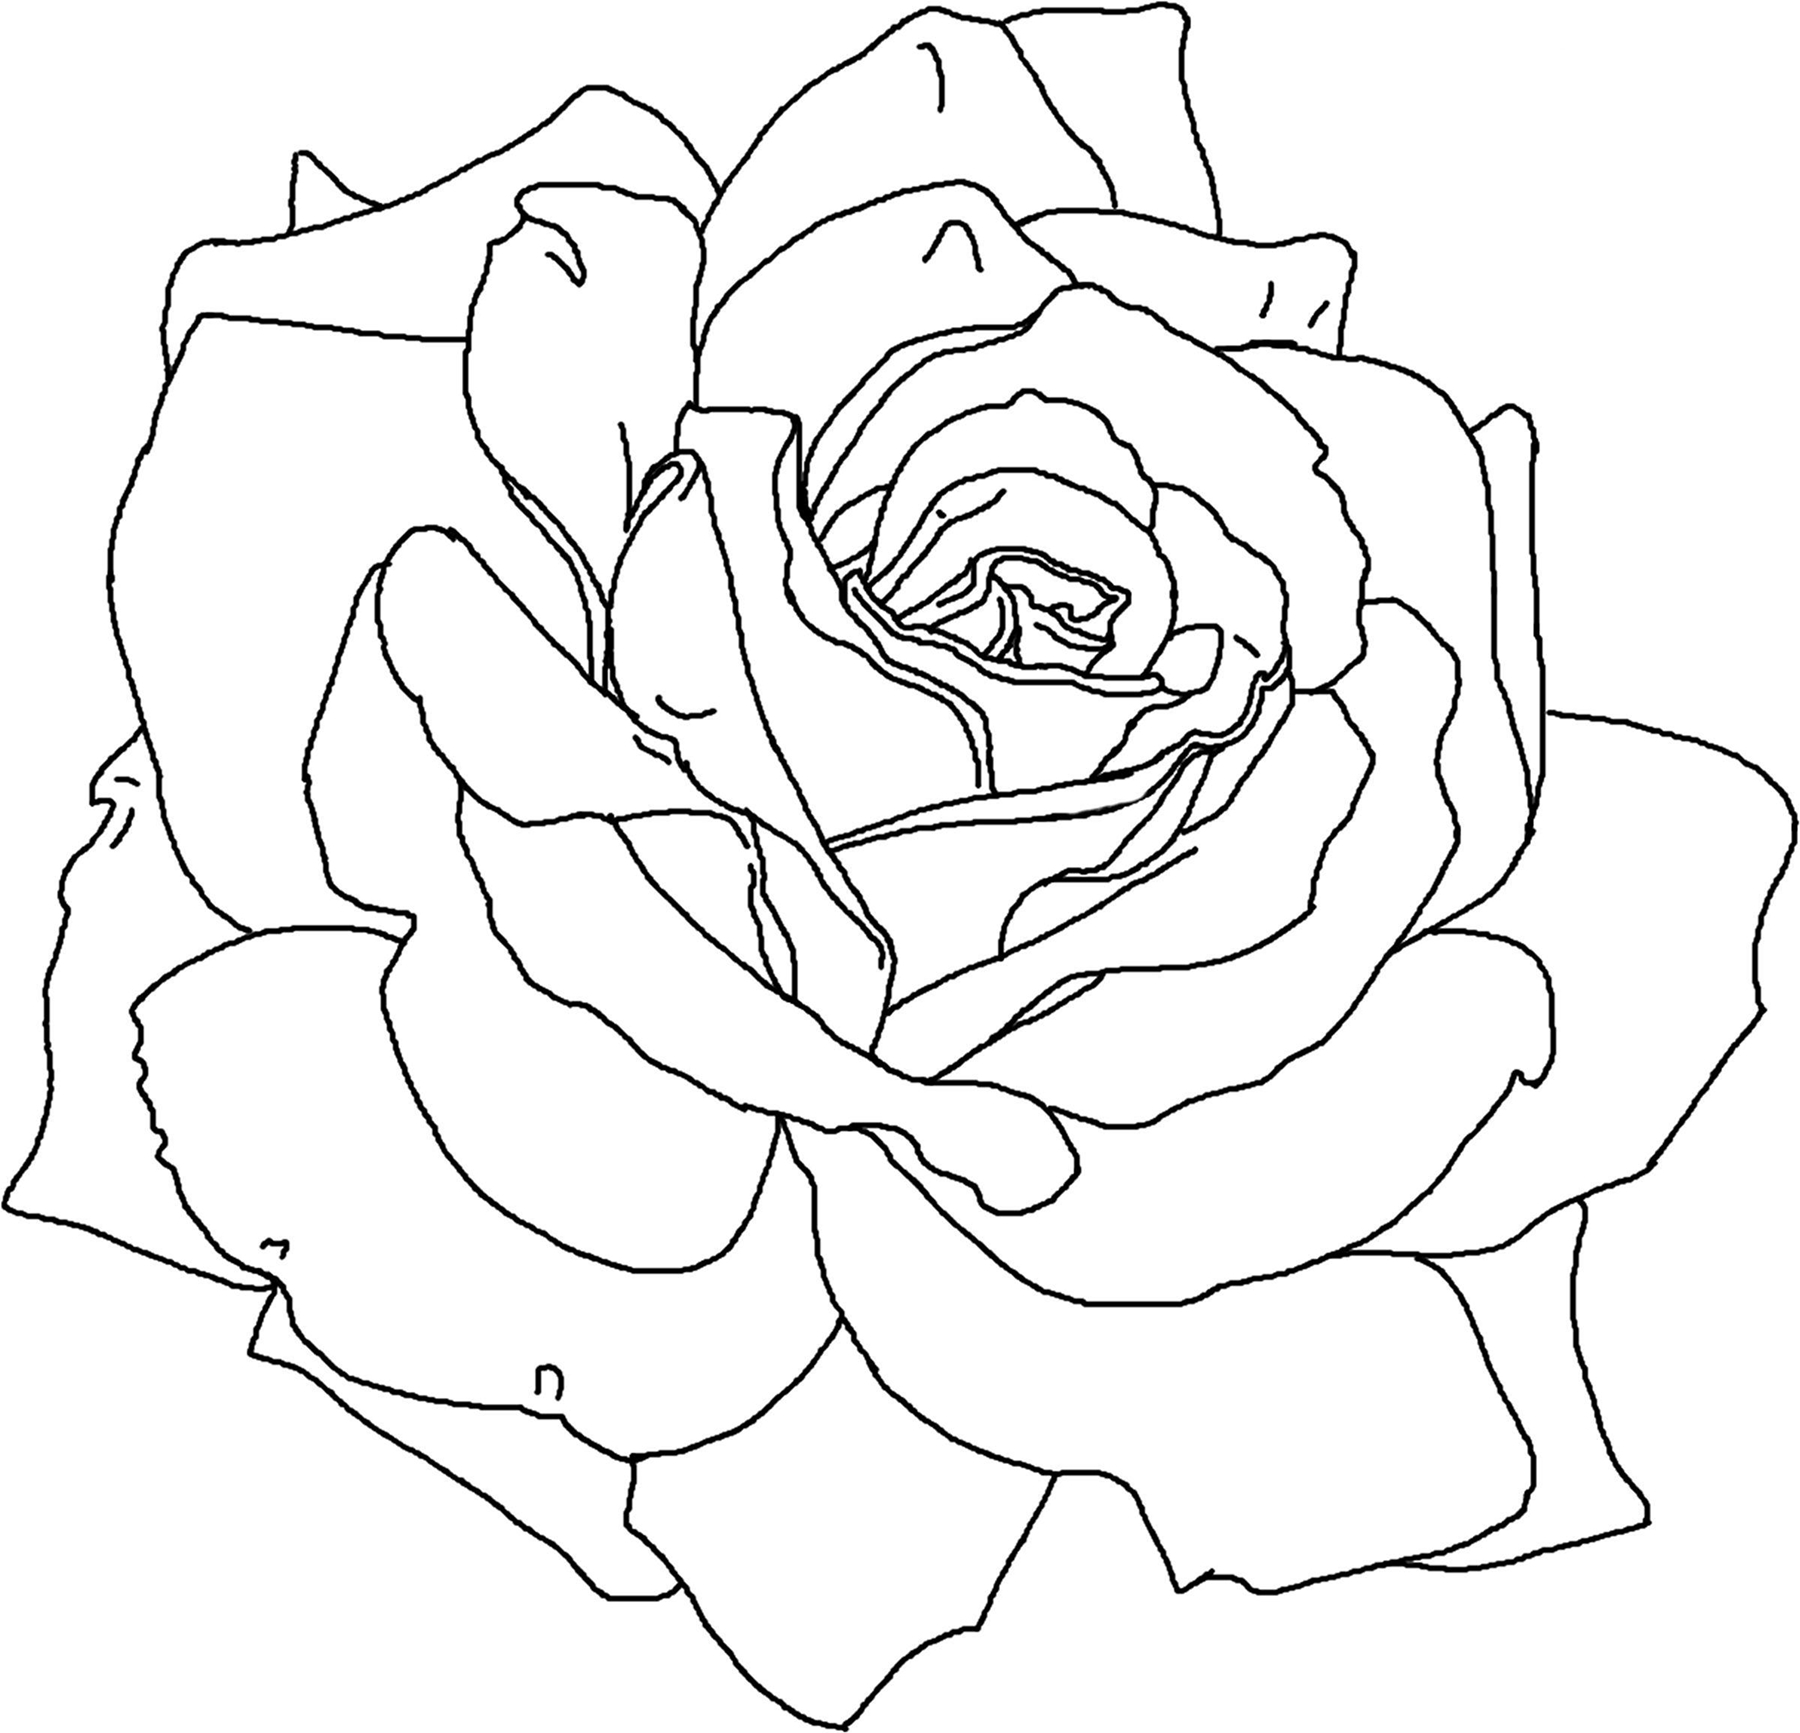 flower coloring pages for kids free printable flower coloring pages for kids best flower for kids coloring pages